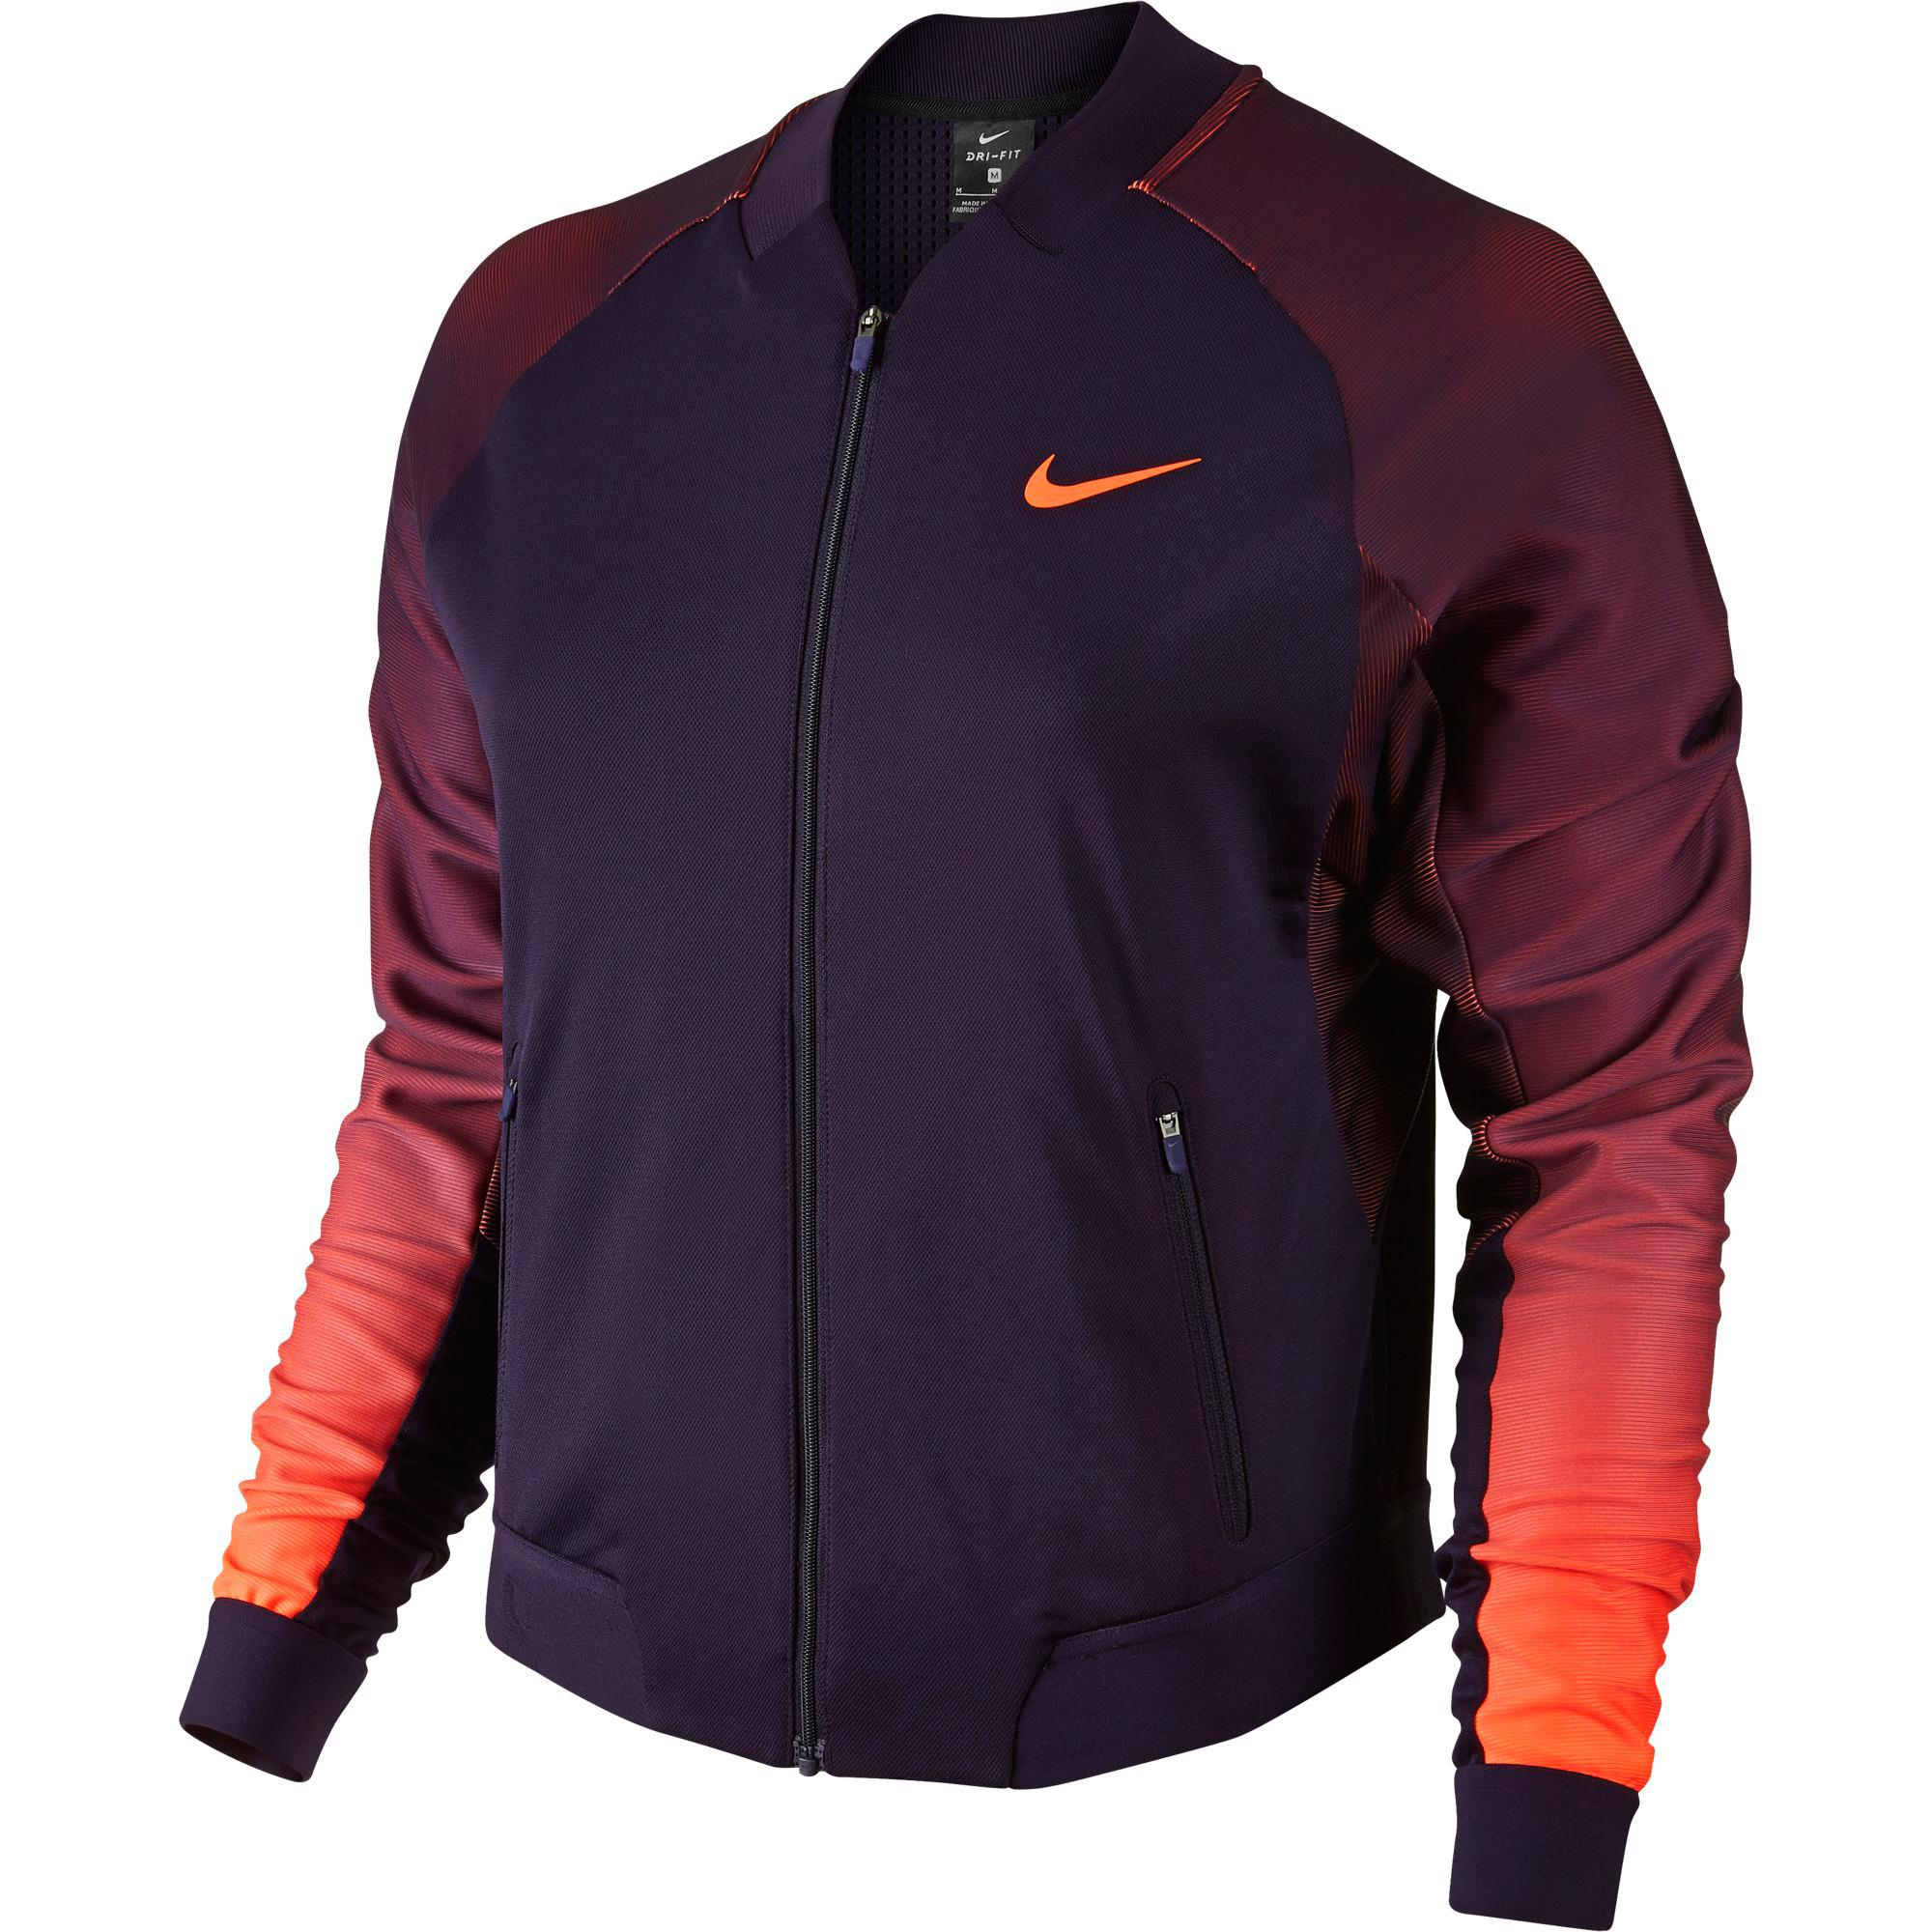 87b93bf7084a Nike Womens Court Tennis Jacket - Purple Bright Mango - Tennisnuts.com